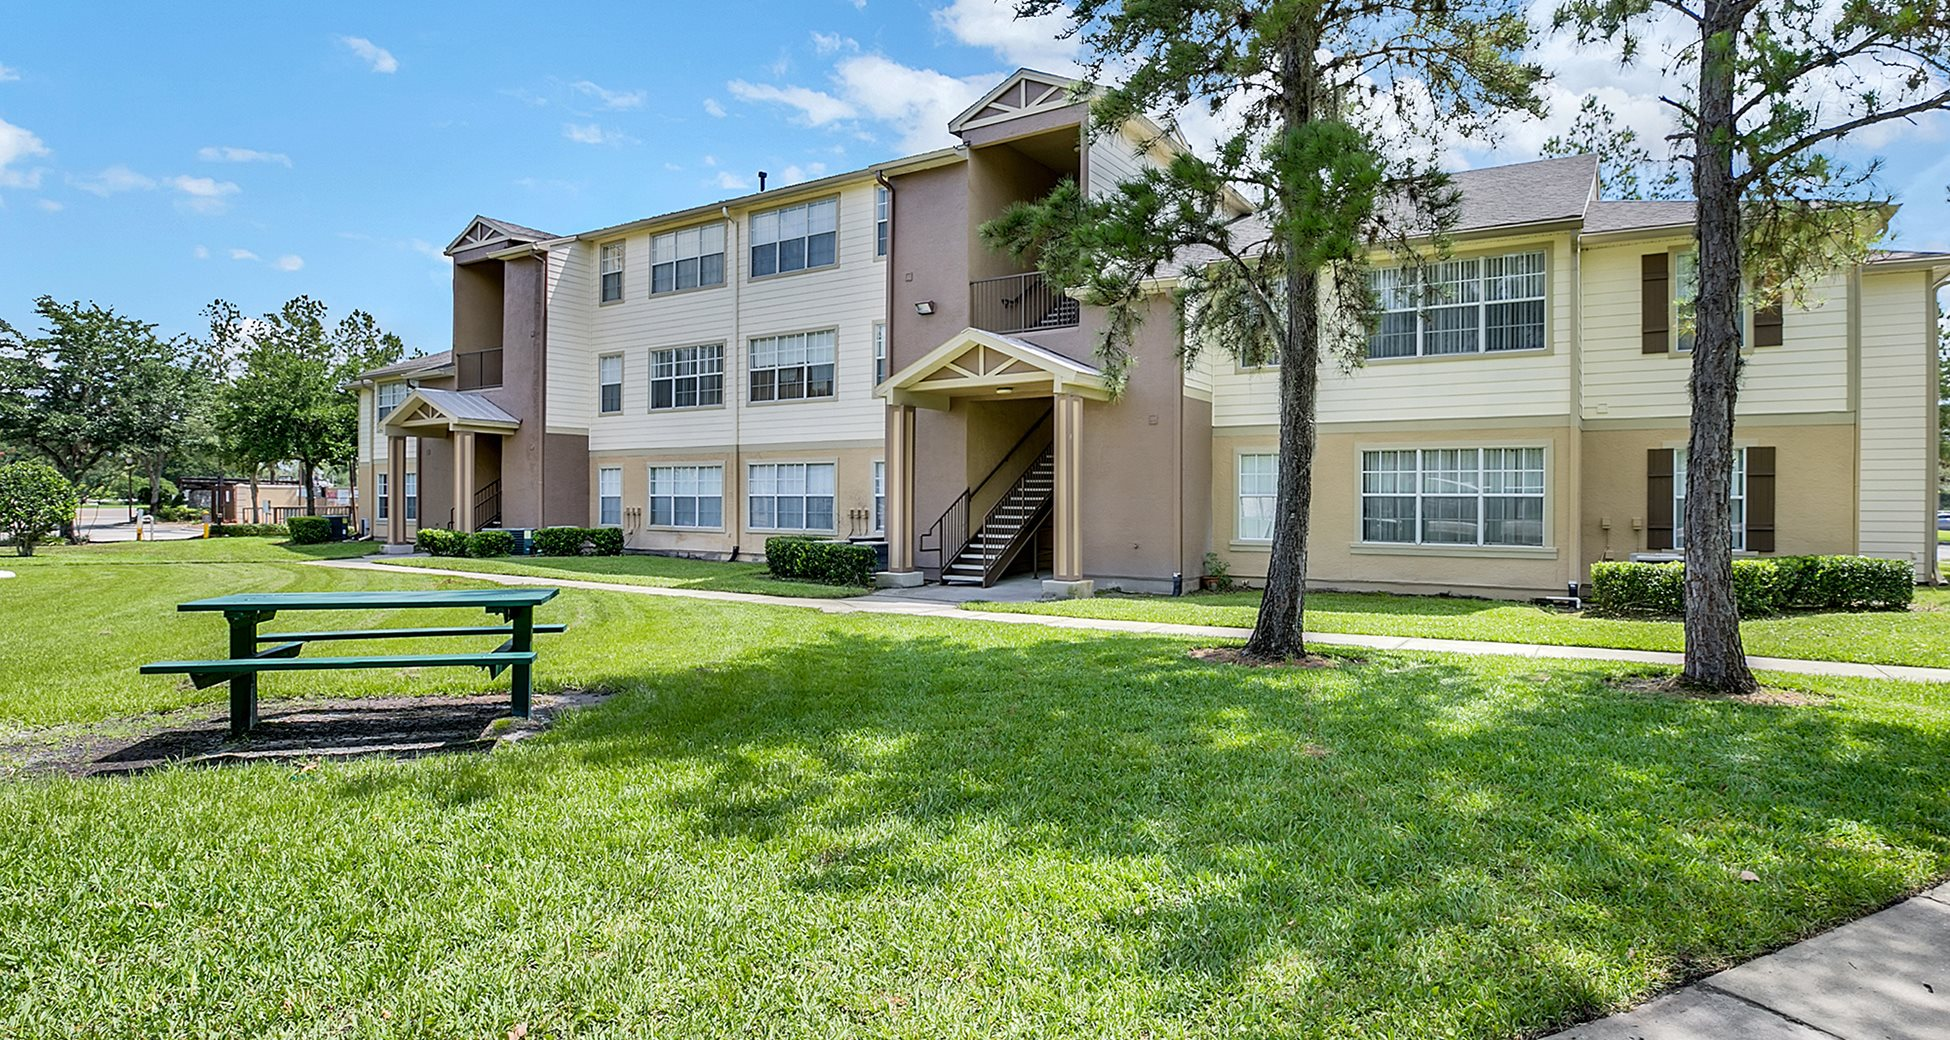 Heritage Pines Apartments for rent in Tampa, FL. Make this community your new home or visit other Concord Rents communities at ConcordRents.com. Building exterior